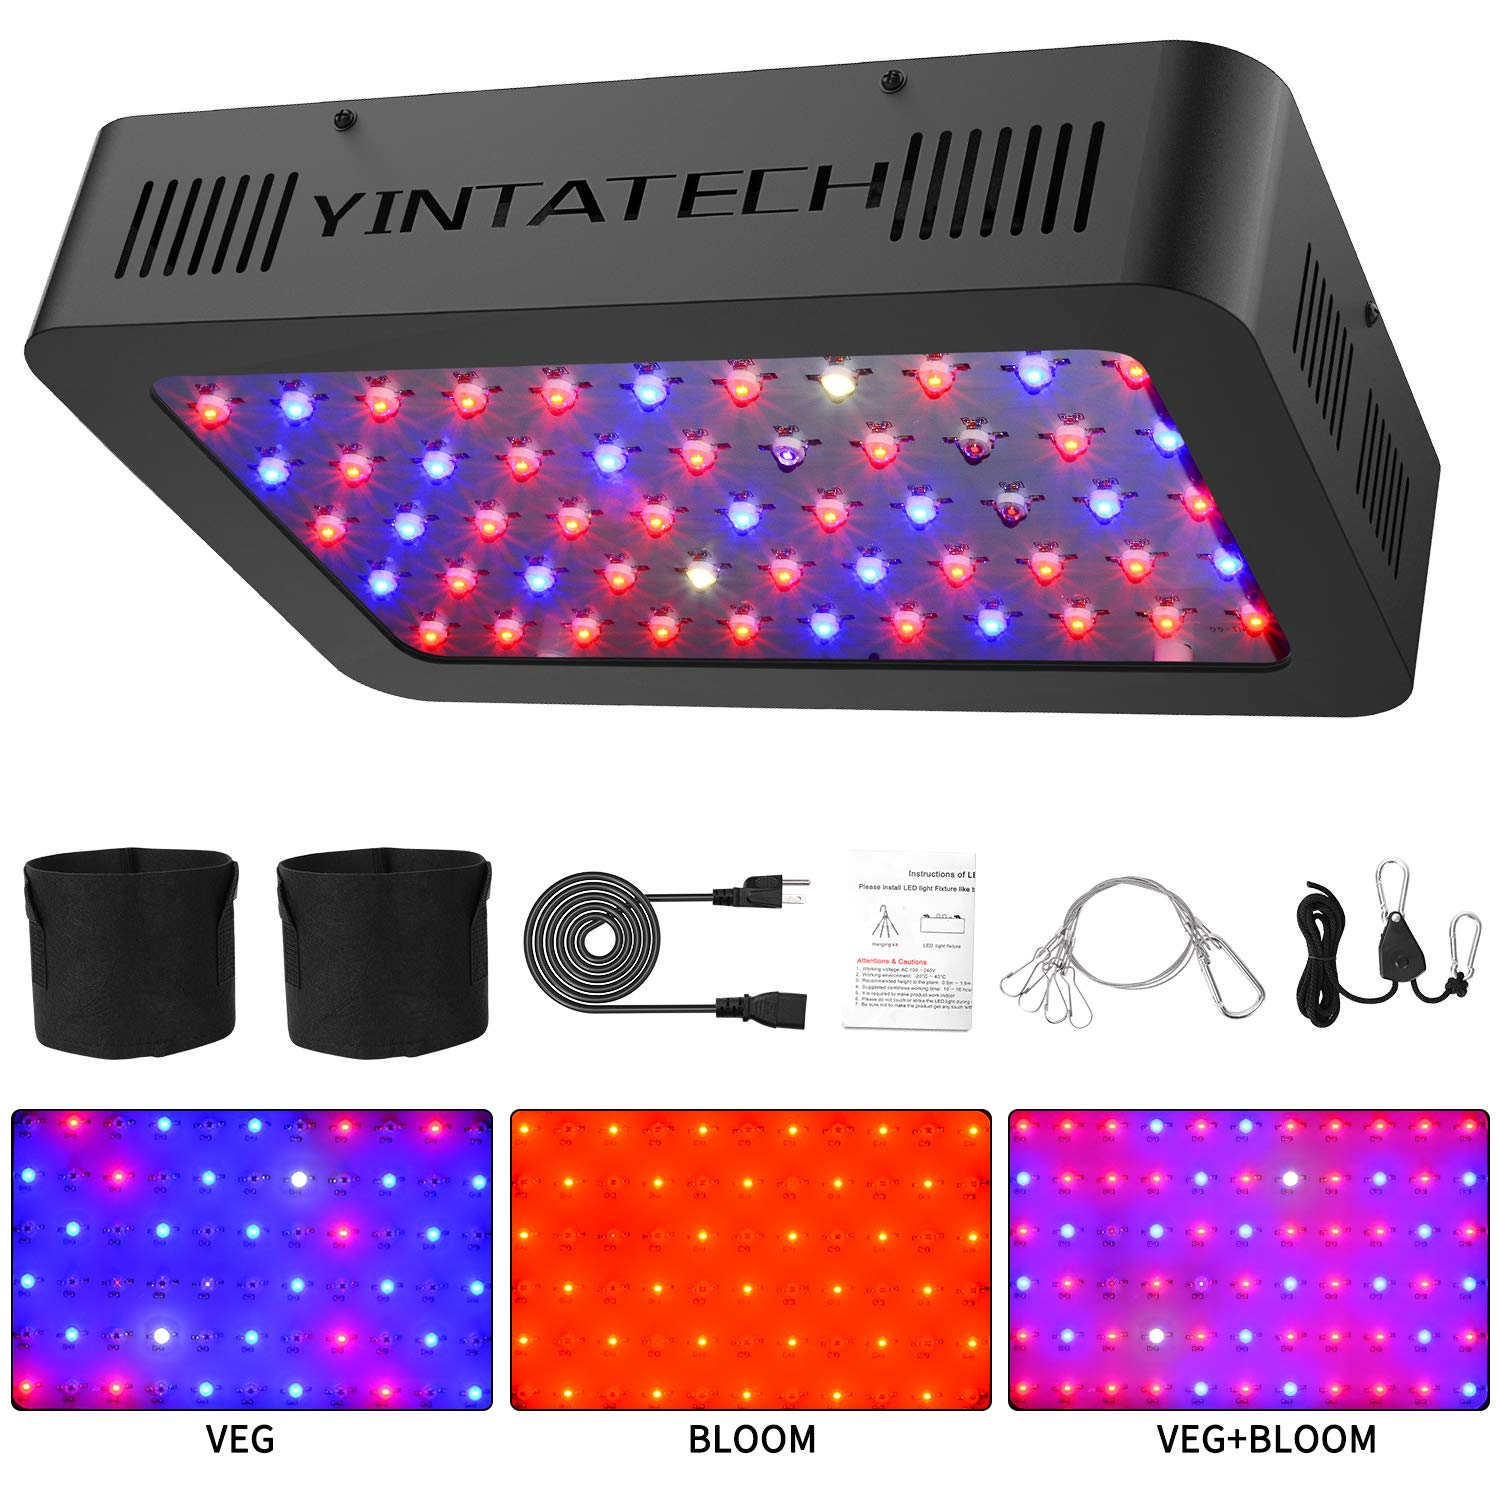 600W LED Grow Light, Growing Lamp Full Spectrum for Indoor Hydroponic Greenhouse Plants Veg and Flower with Double Switch Dual Chip, Daisy Chain, UV IR, Adjustable Rope Hanger 66pcs 10W LEDs